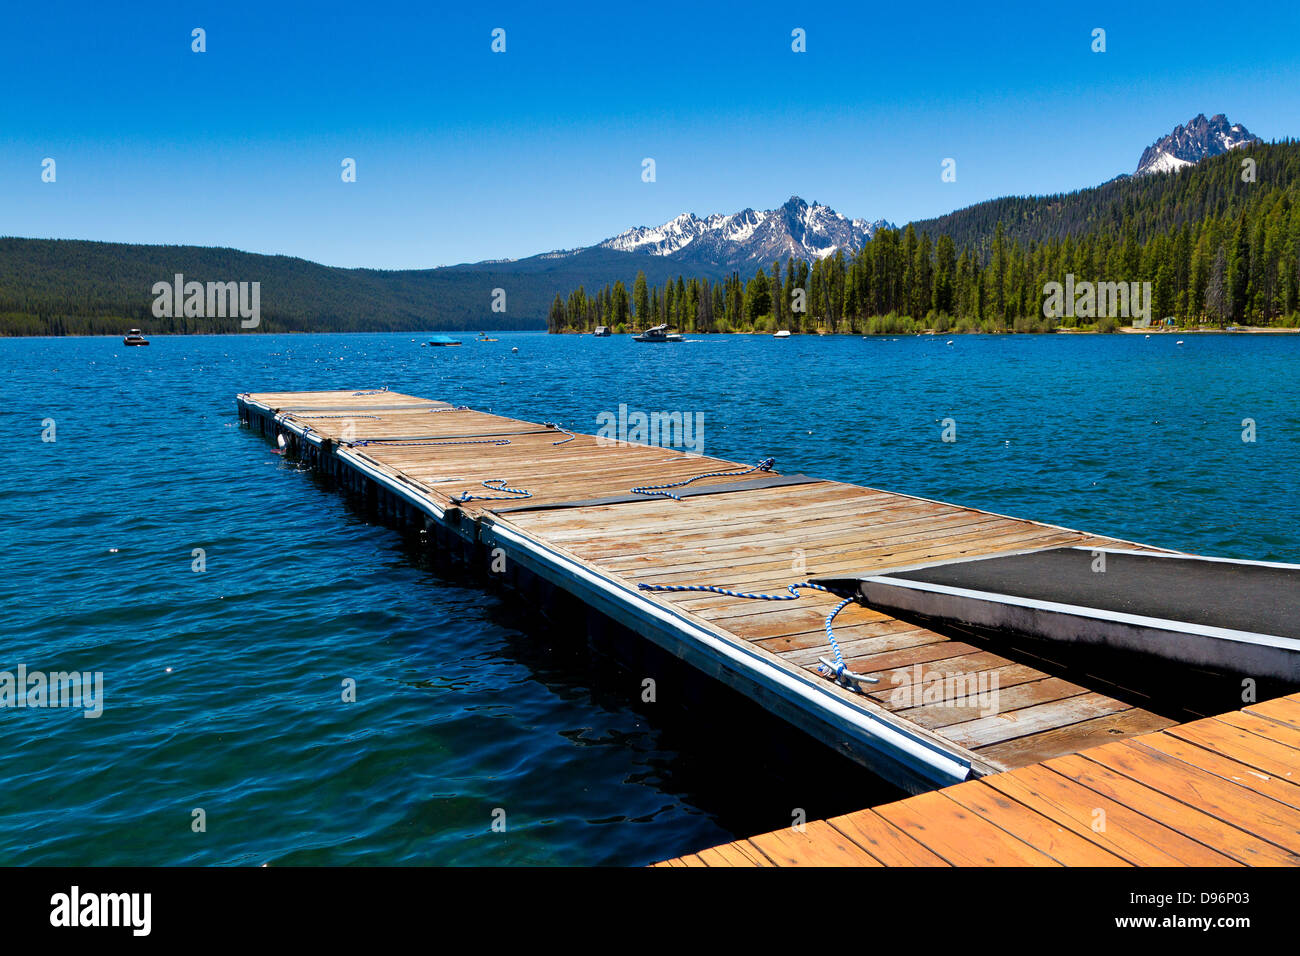 Wooden boat dock at north end of Redfish Lake with snowcapped mountains in background on clear summer day in Stanley, Stock Photo